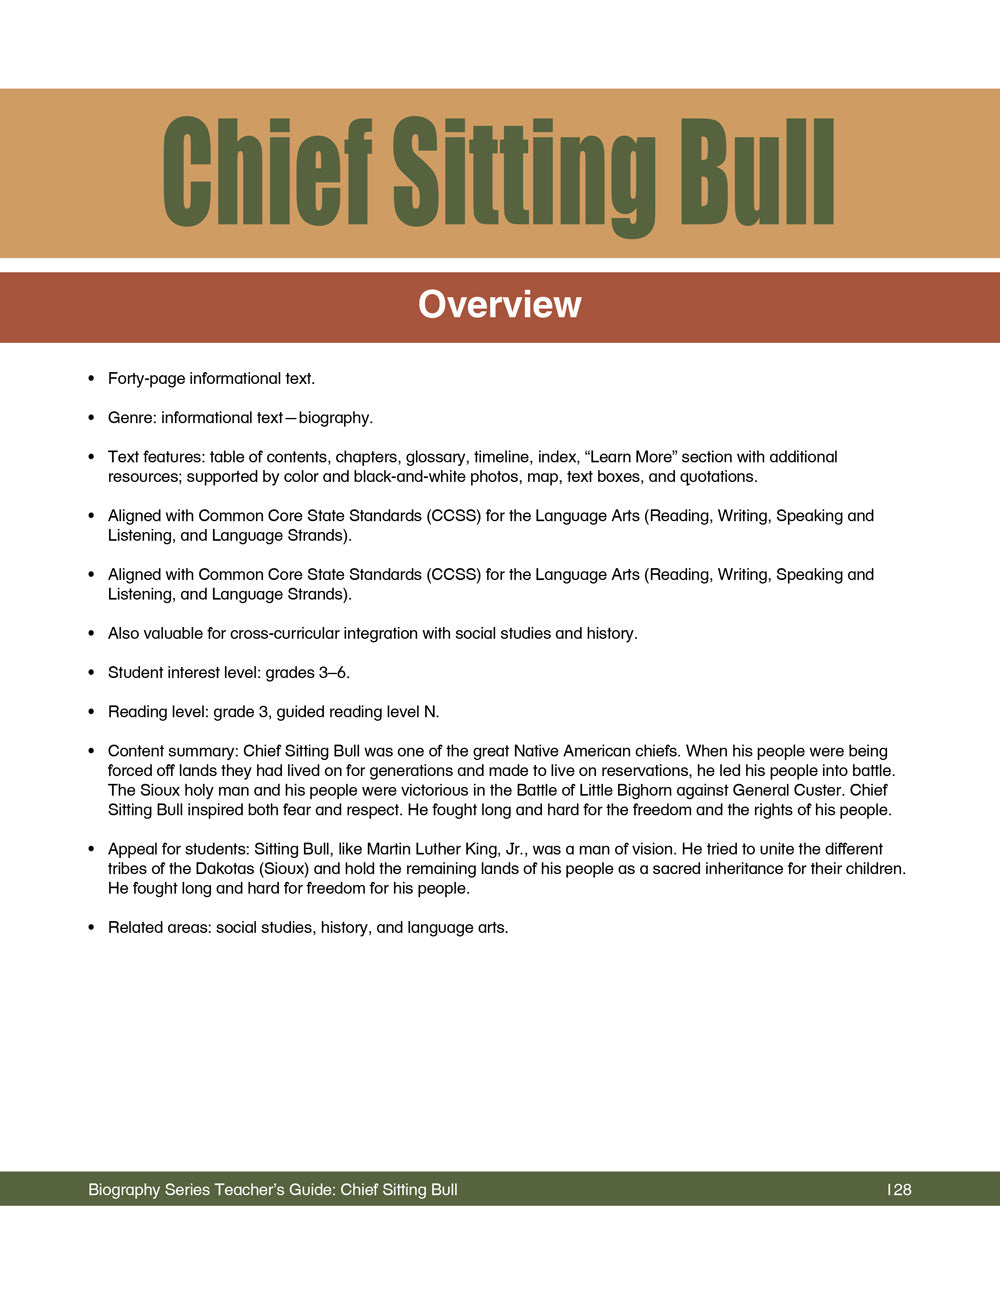 Chief Sitting Bull Teacher's Guide